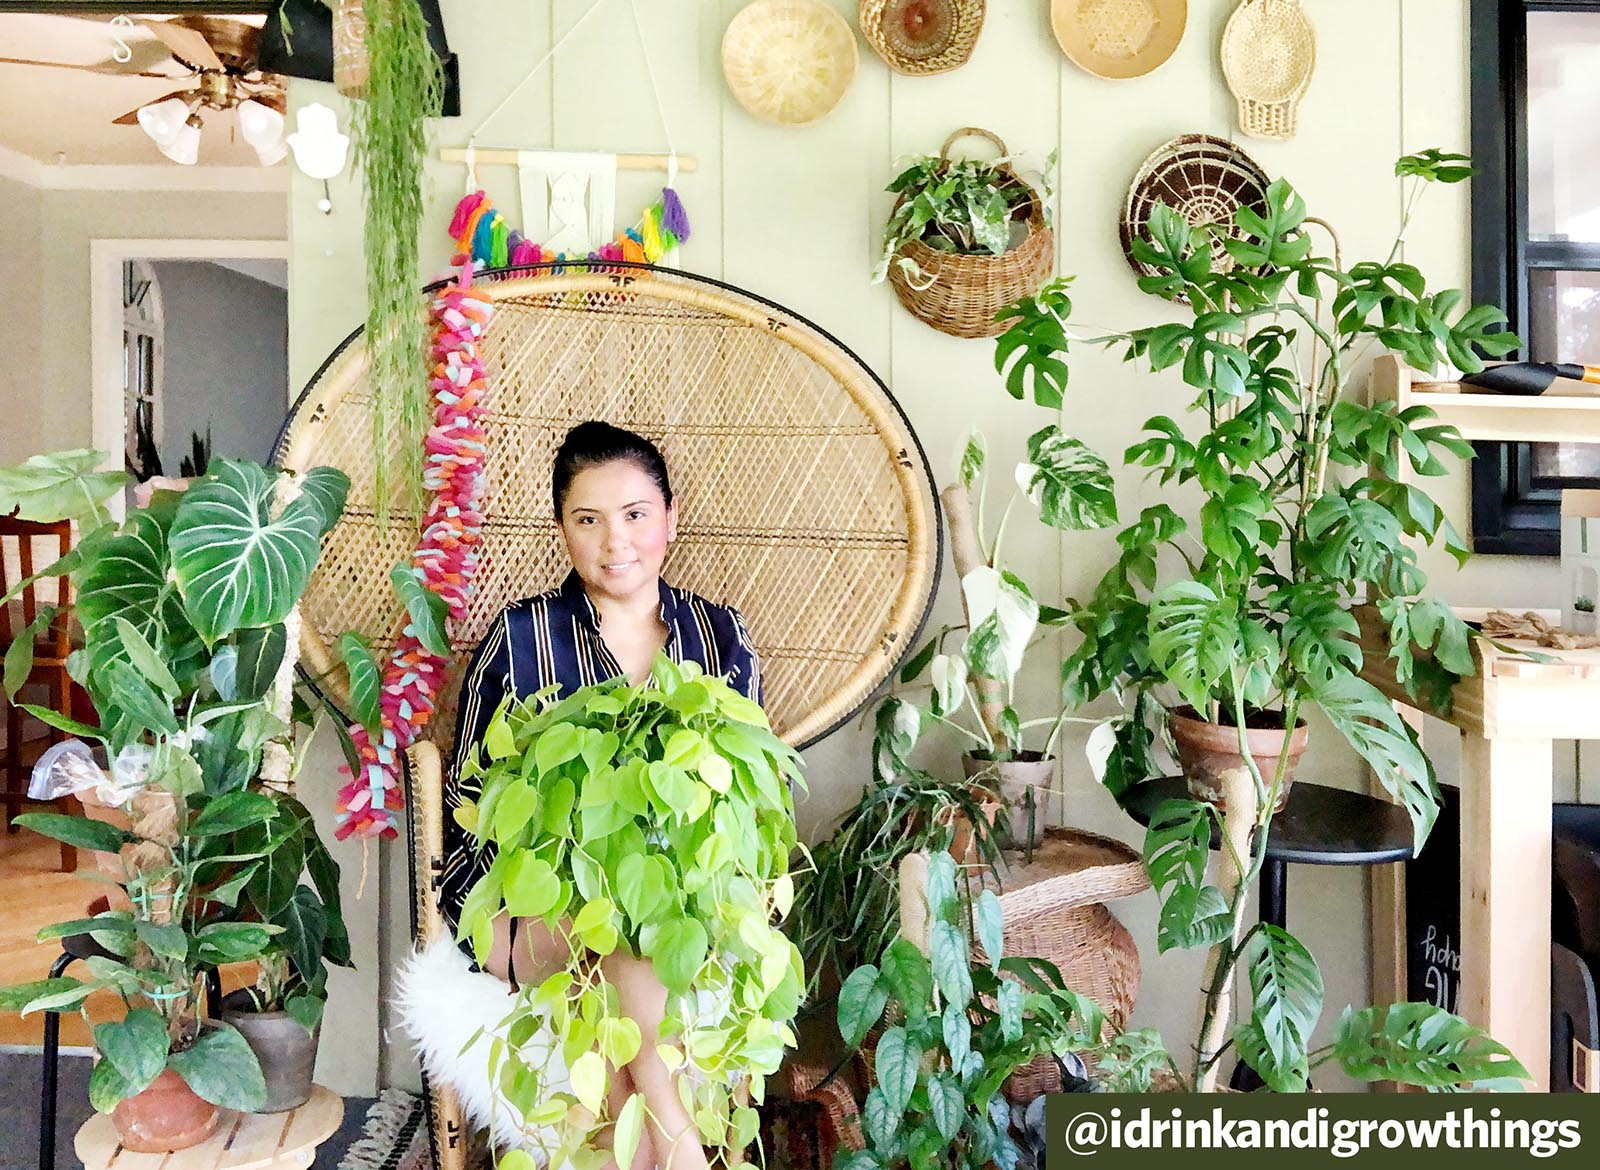 Q&A: Plant Care Tips and Insight with @idrinkandigrowthings